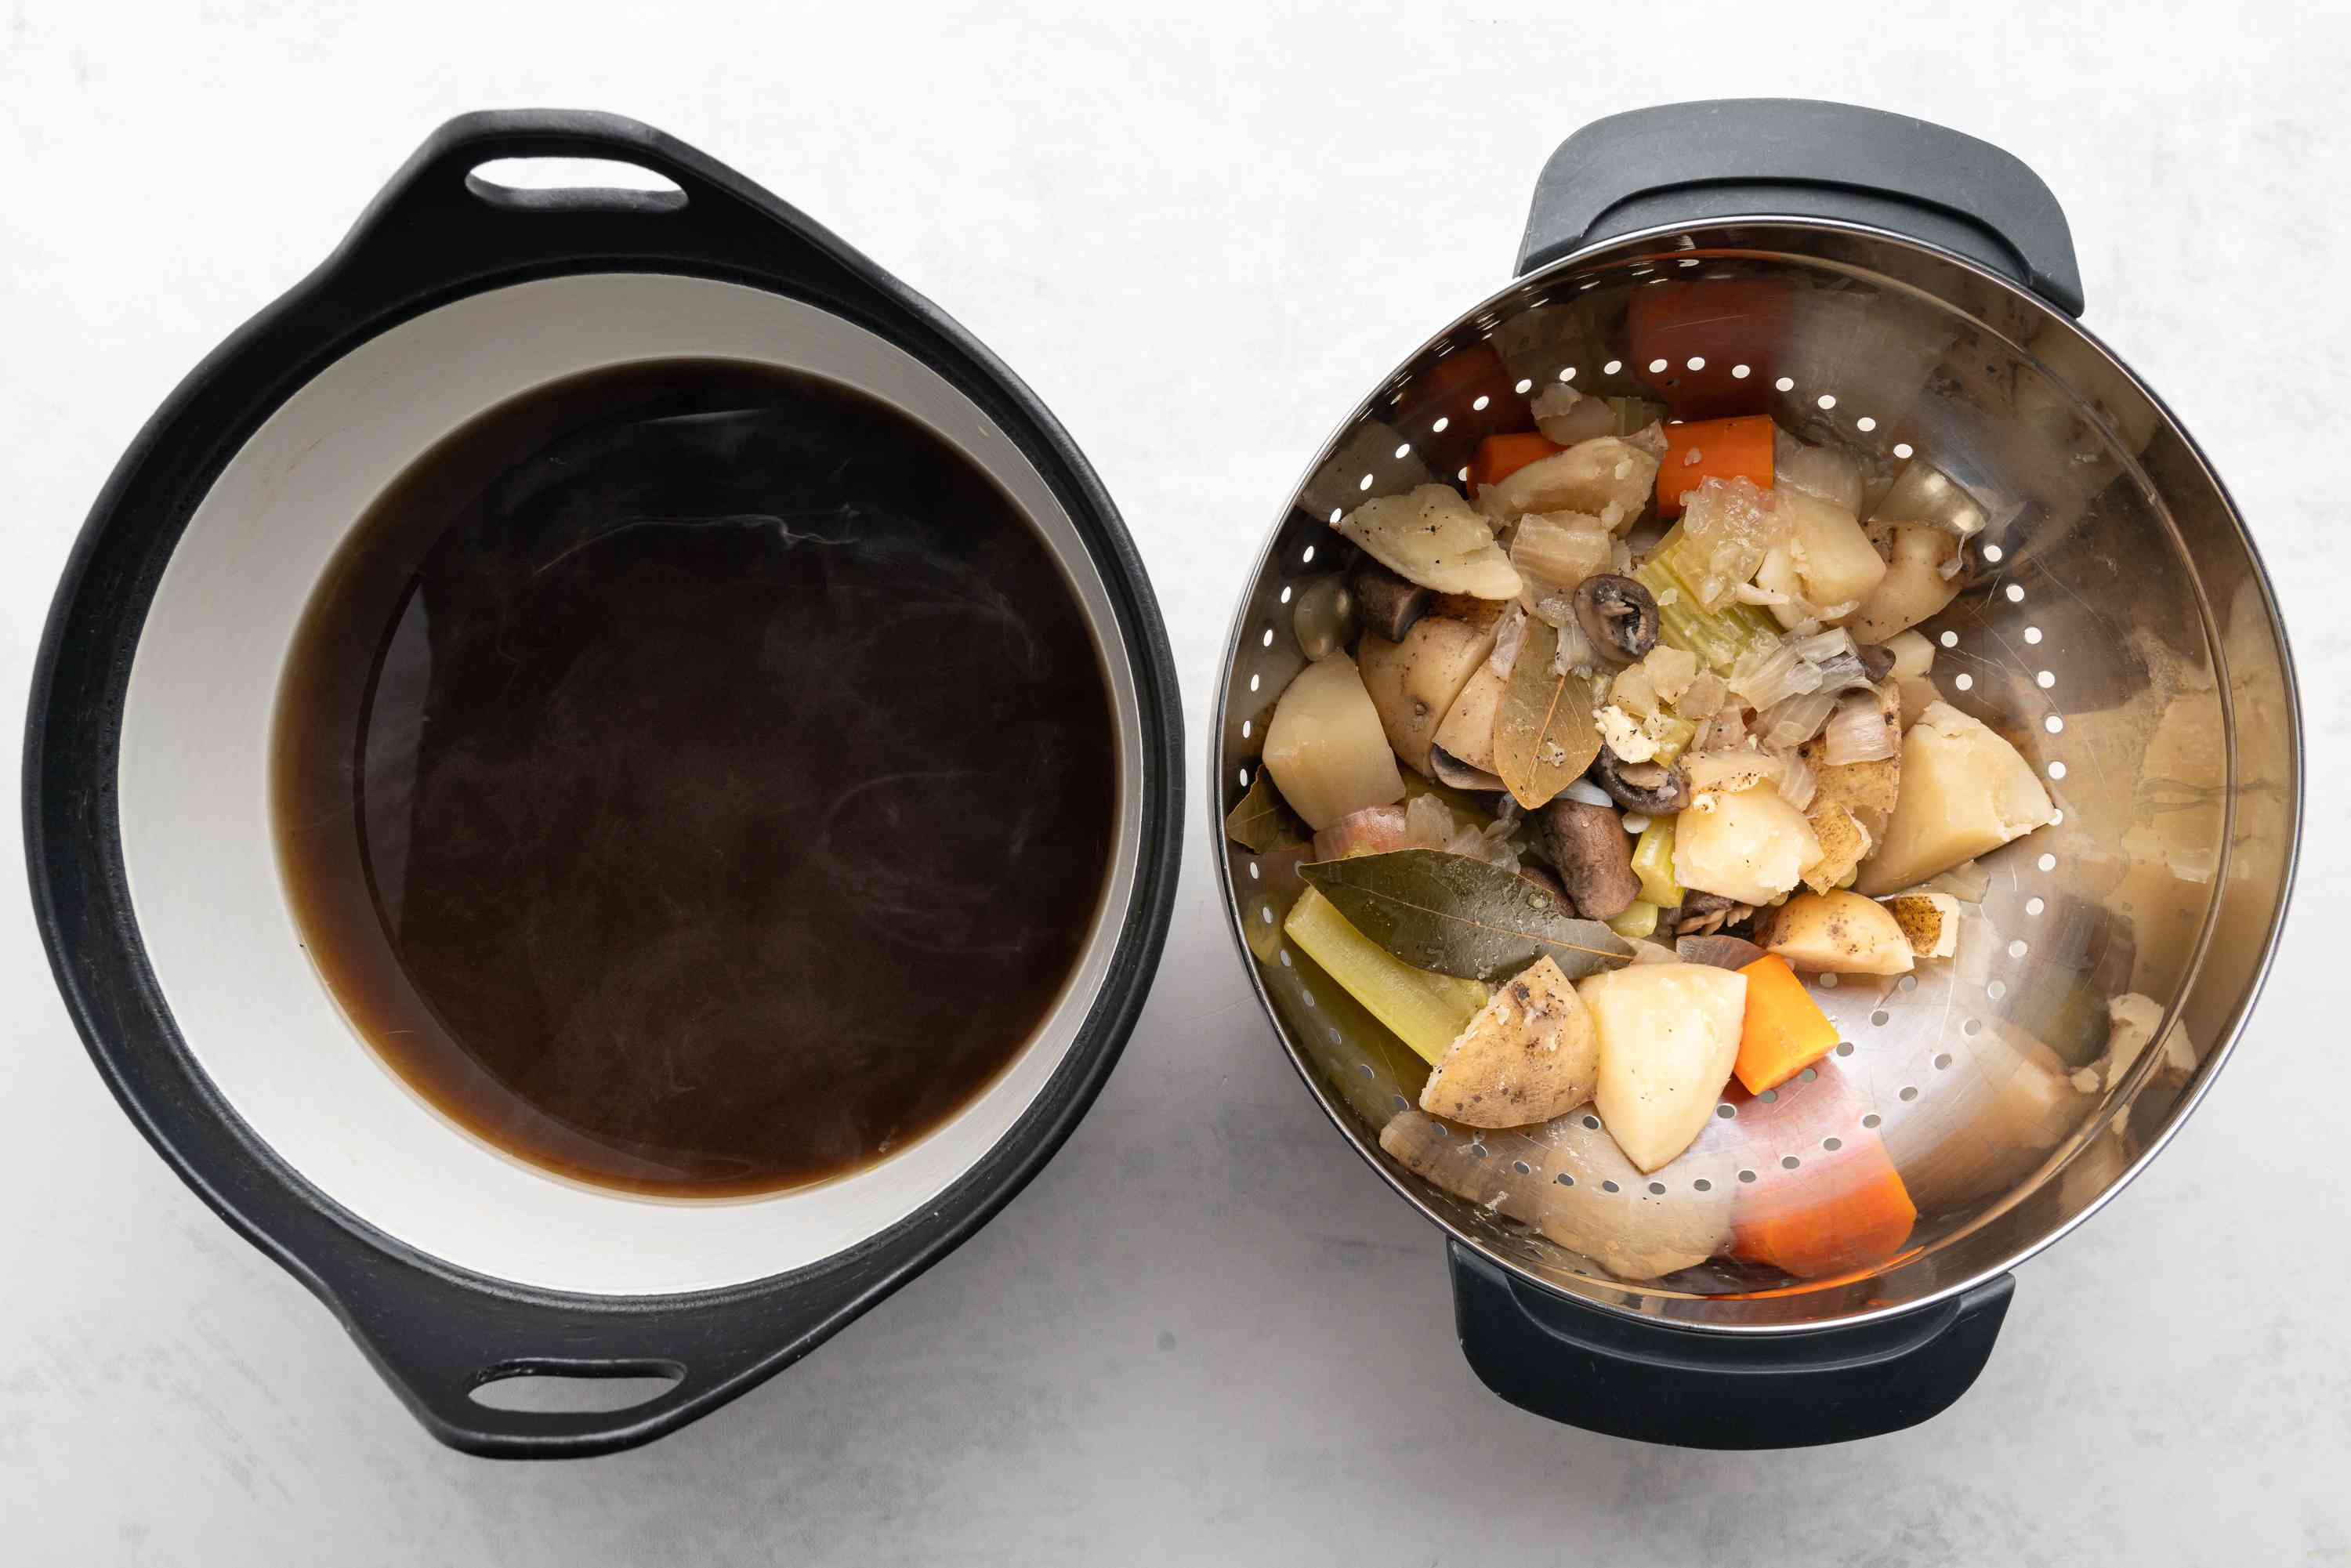 Basic Vegetable Broth in a pot, vegetables strained out of the broth